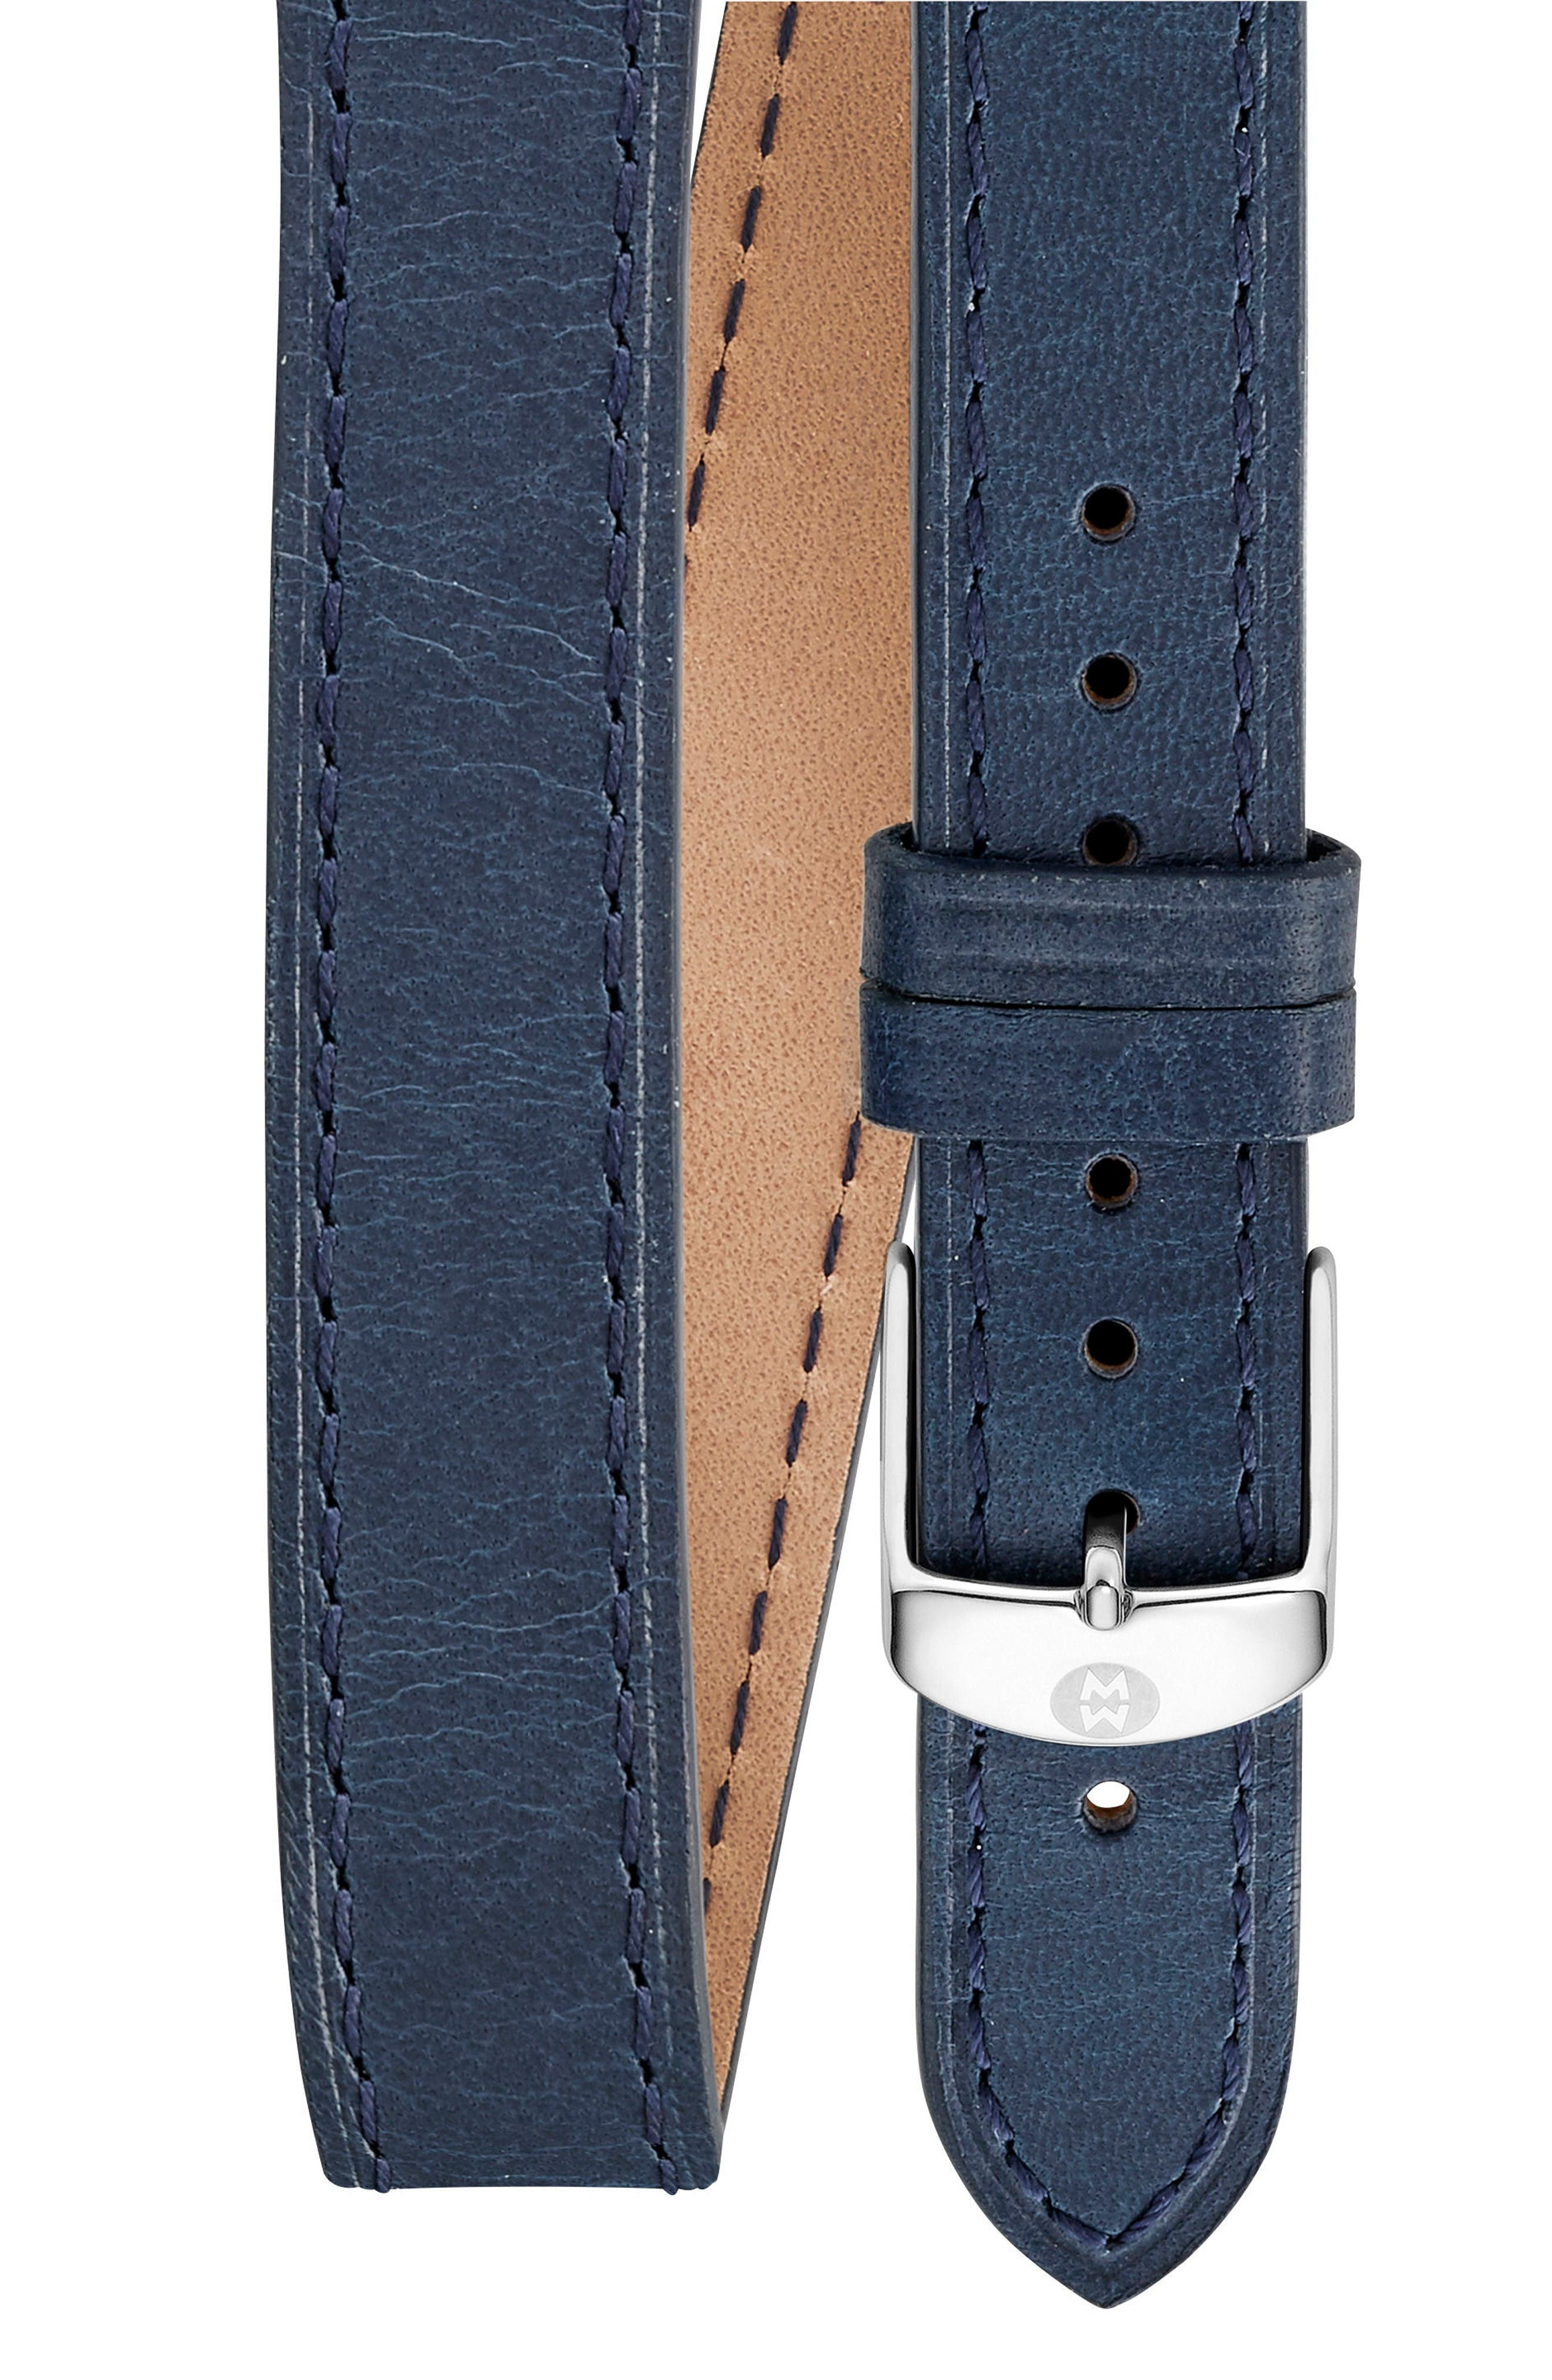 18mm Leather Watch Strap,                             Main thumbnail 1, color,                             Navy